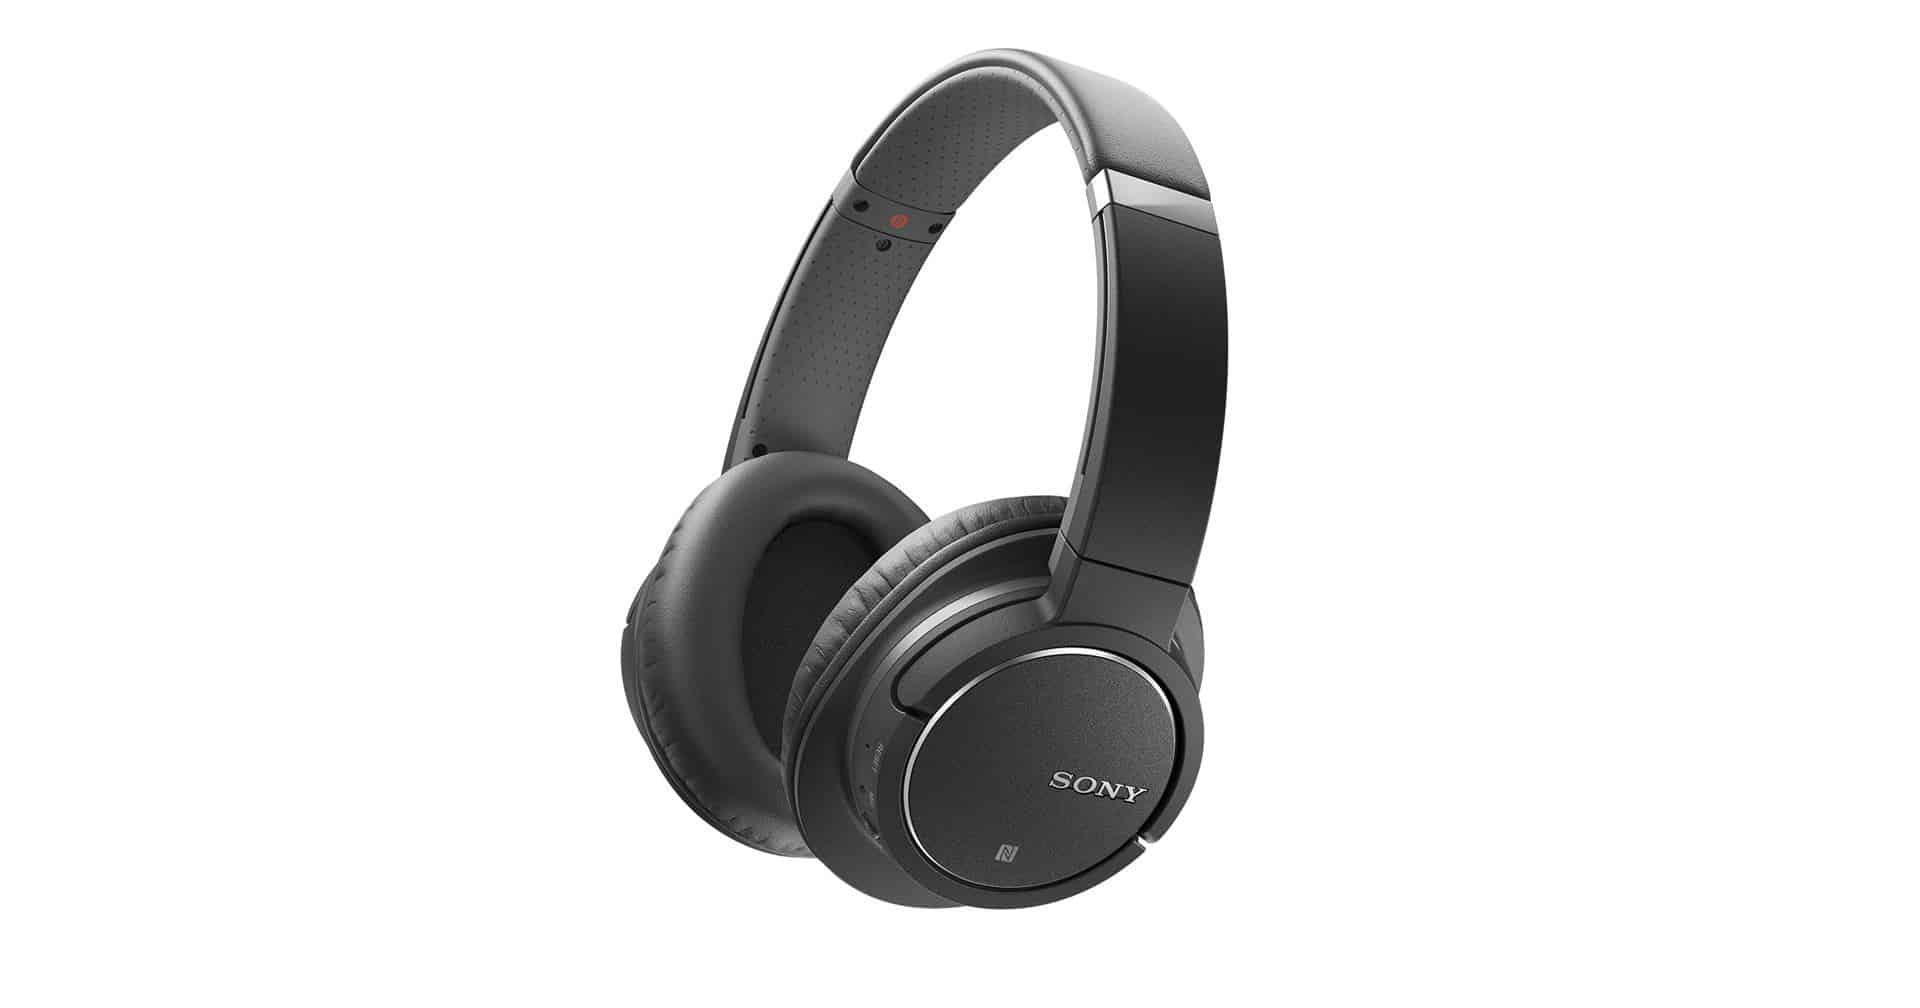 0002670_sony-zx770bn-wireless-noise-cancelling-headphones.jpeg